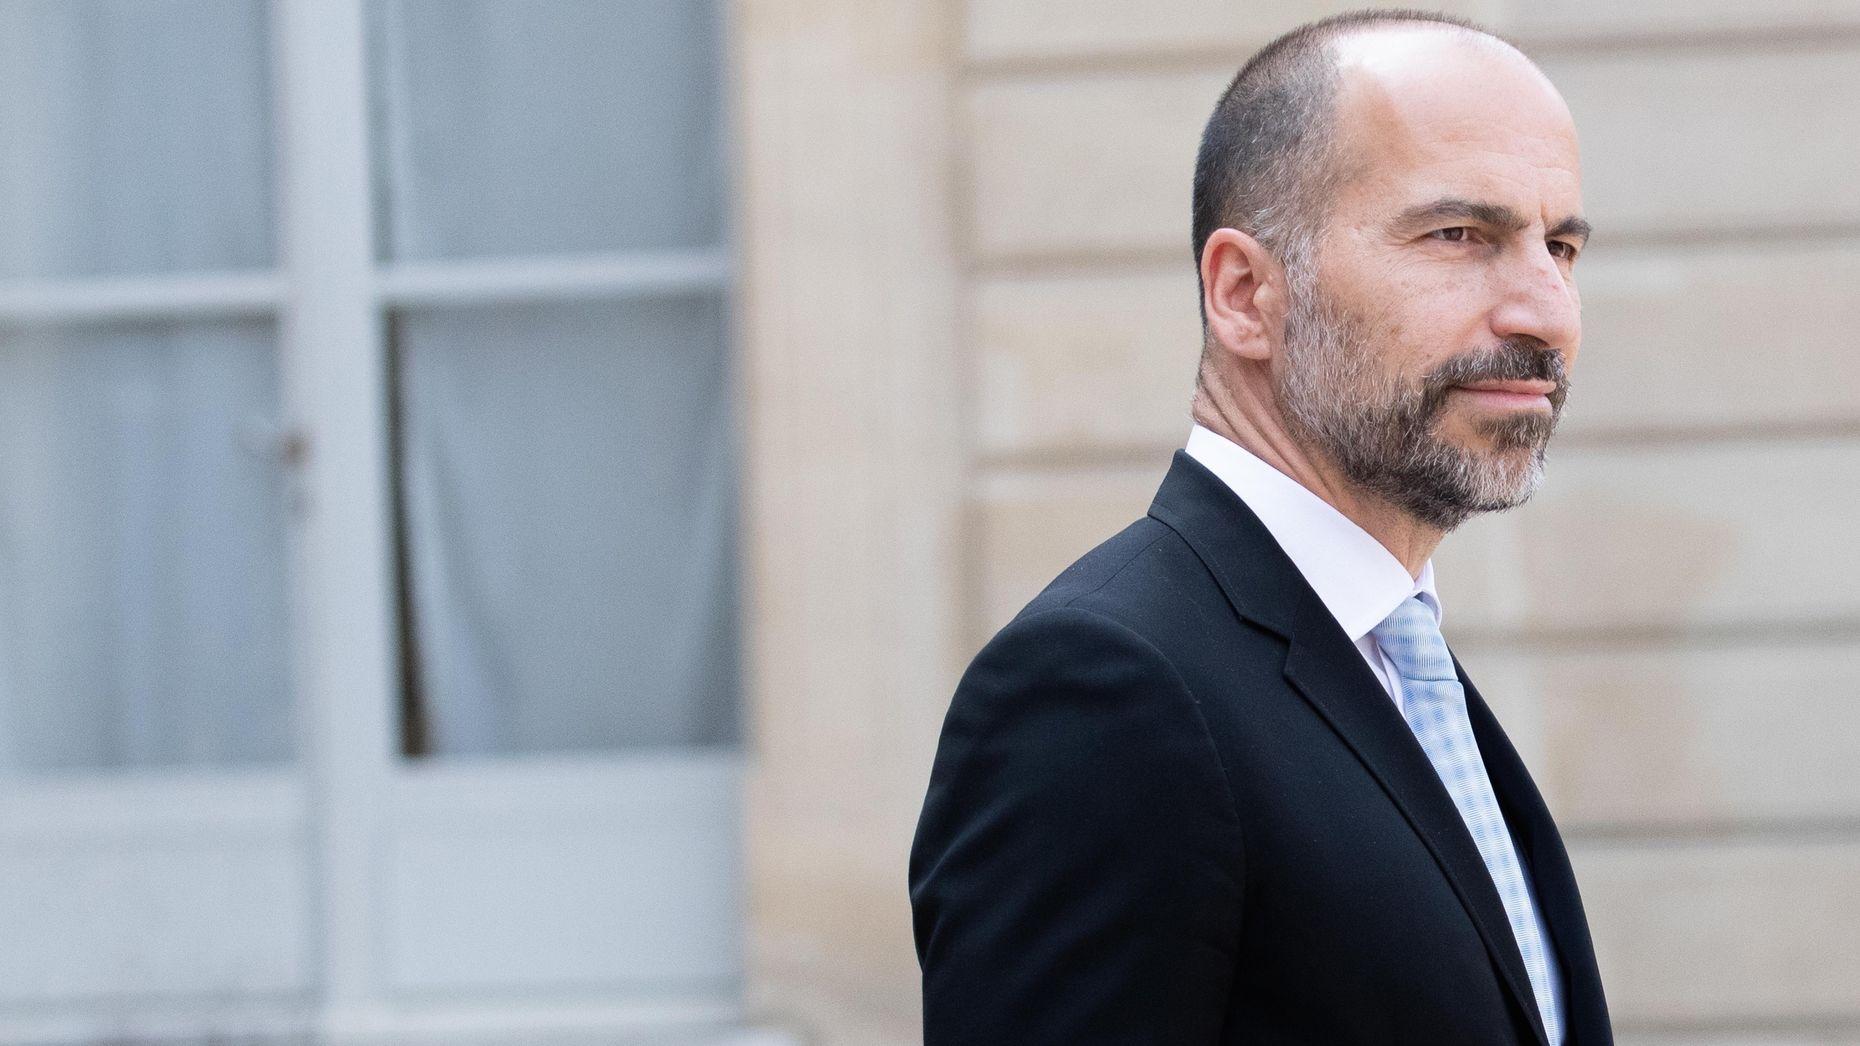 Uber CEO Dara Khosrowshahi. Photo by Bloomberg.